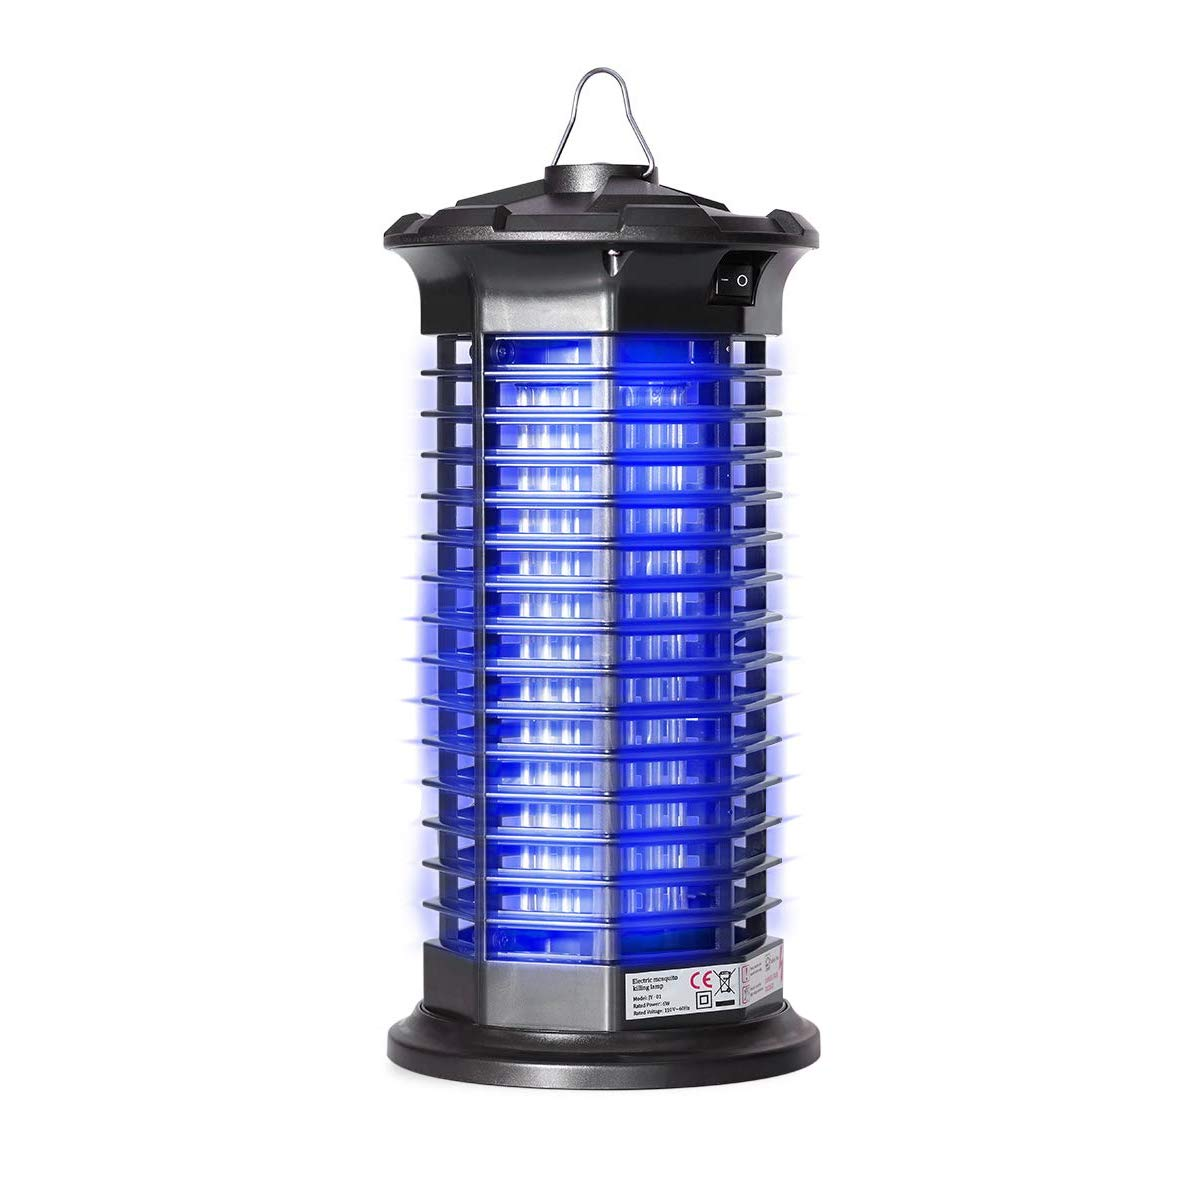 Garsum Bug Zapper | Electric Mosquito Killer | Indoor Insect Trap | Child & Pet Safe, Non-Toxic |Fly Zapper Repellent for Home, Indoor, Kitchen by Garsum